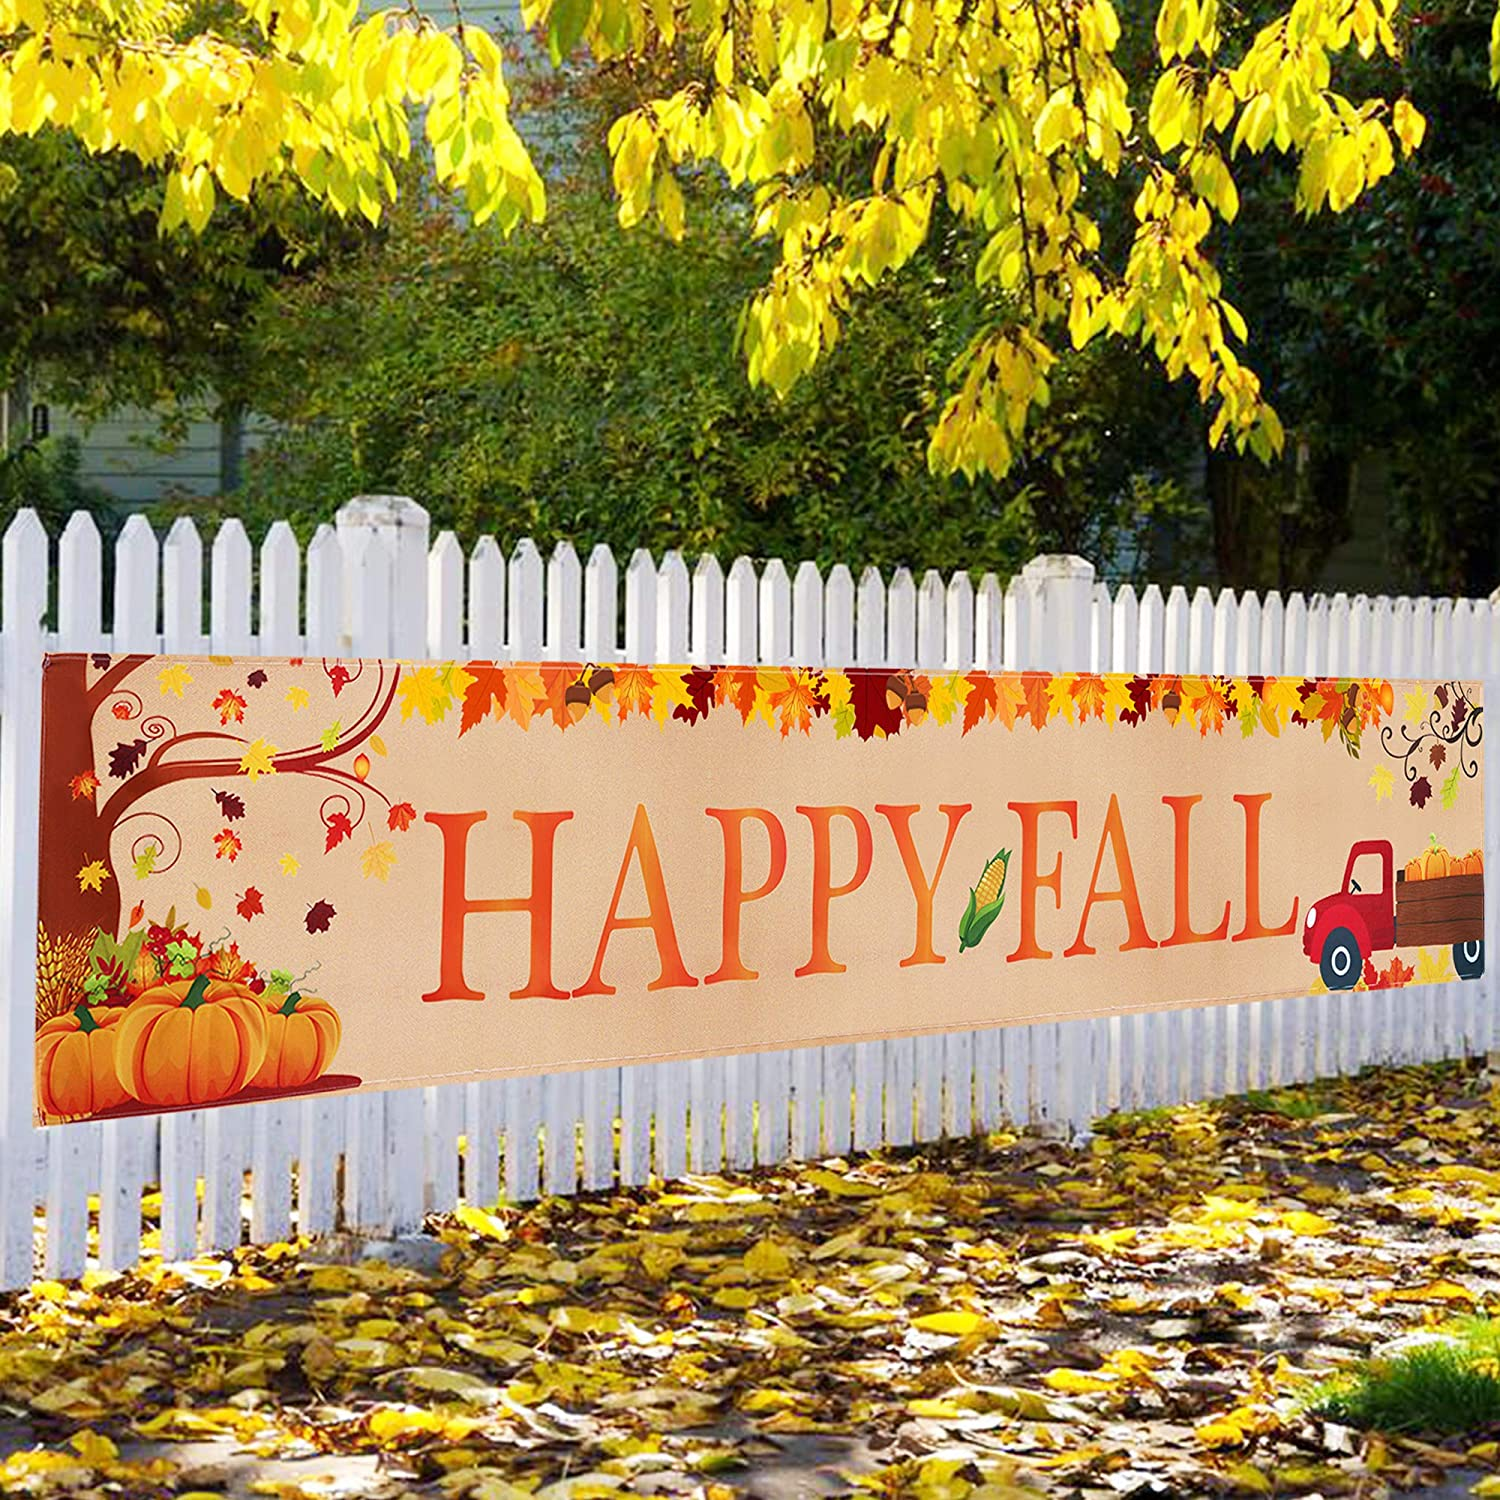 Large Happy Fall Banner, Fall Decorations, Thanksgiving Decor, Fall Maple Leaves Pumpkin Banner, Autumn Fall Party Outdoor & Indoor Decor Supplies(8.2 x 1.5 FT)